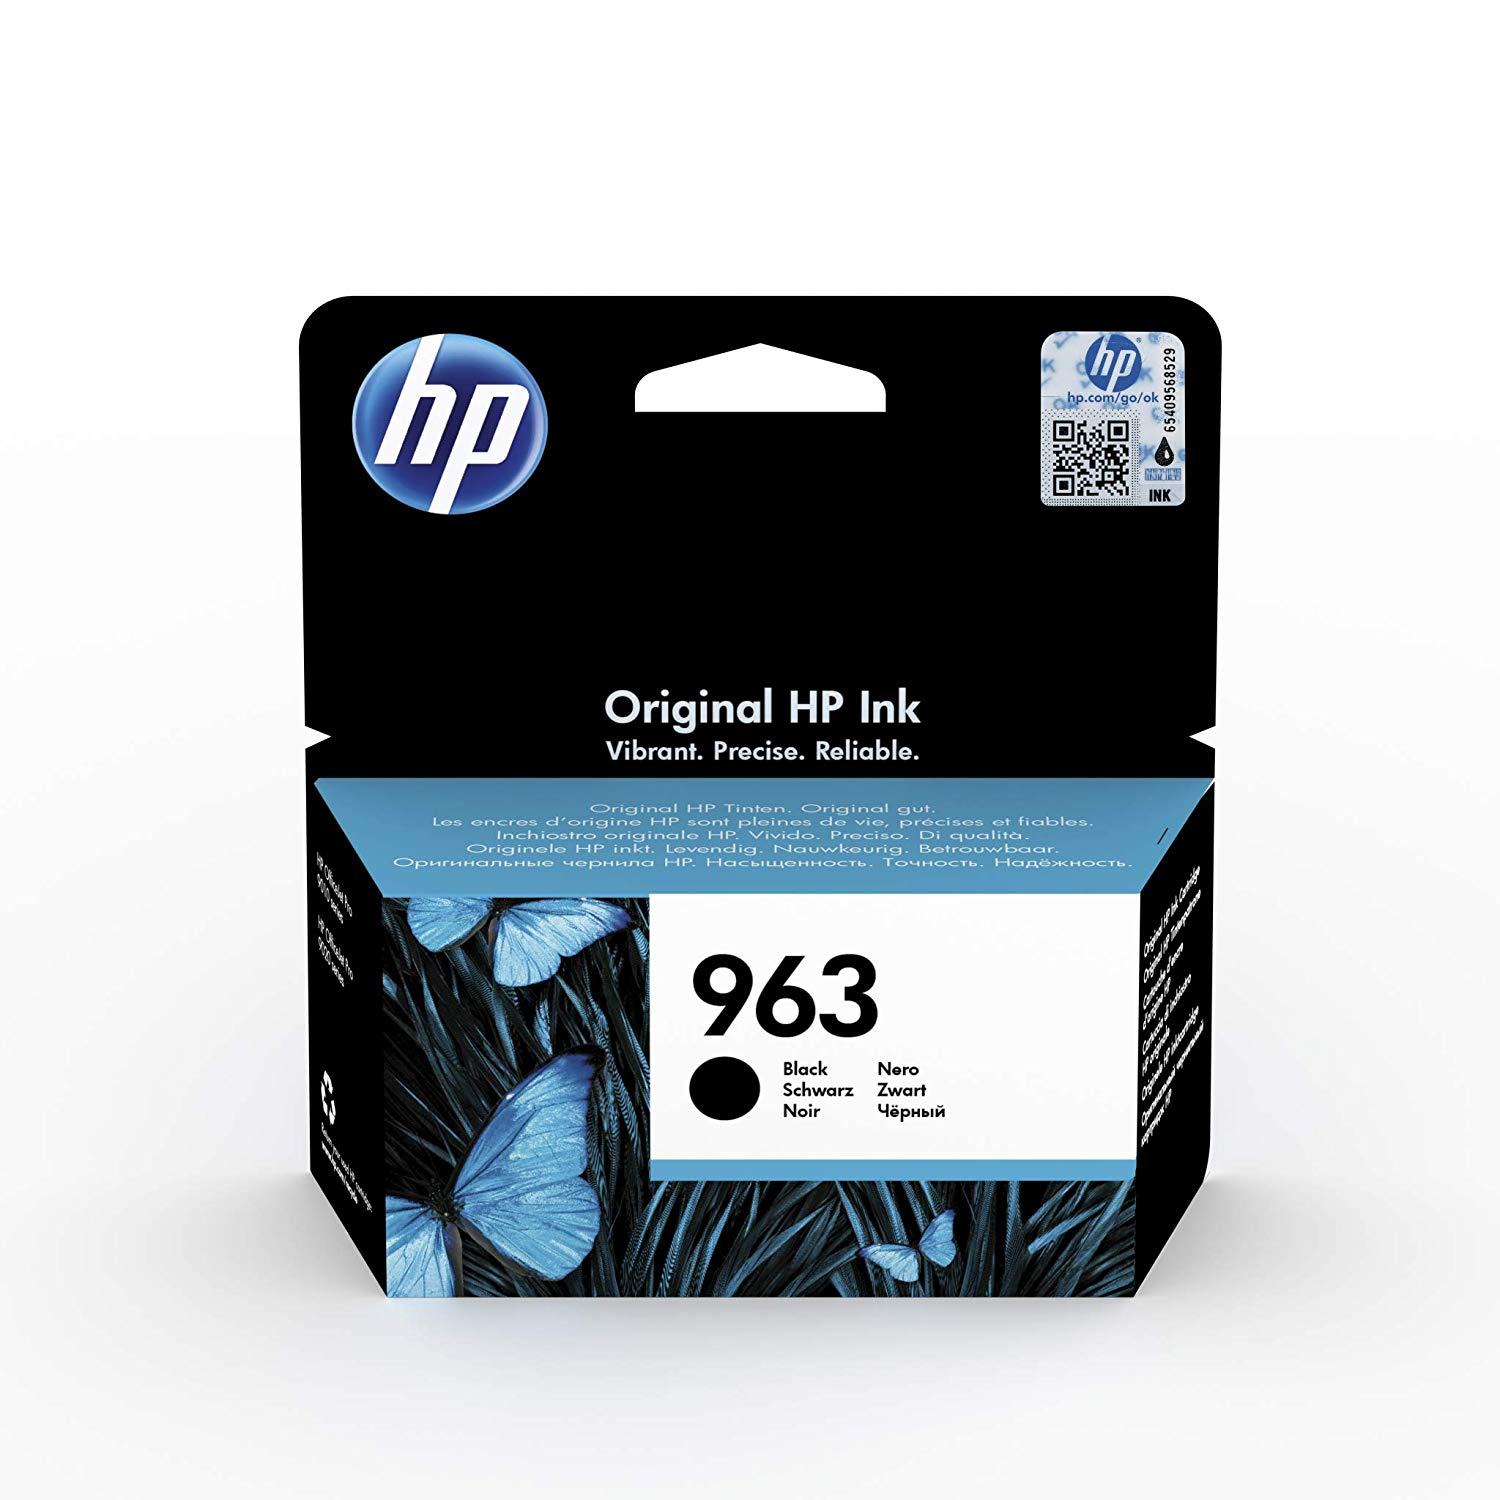 HP 963 (3JA26AE) Original Ink Cartridge - Black